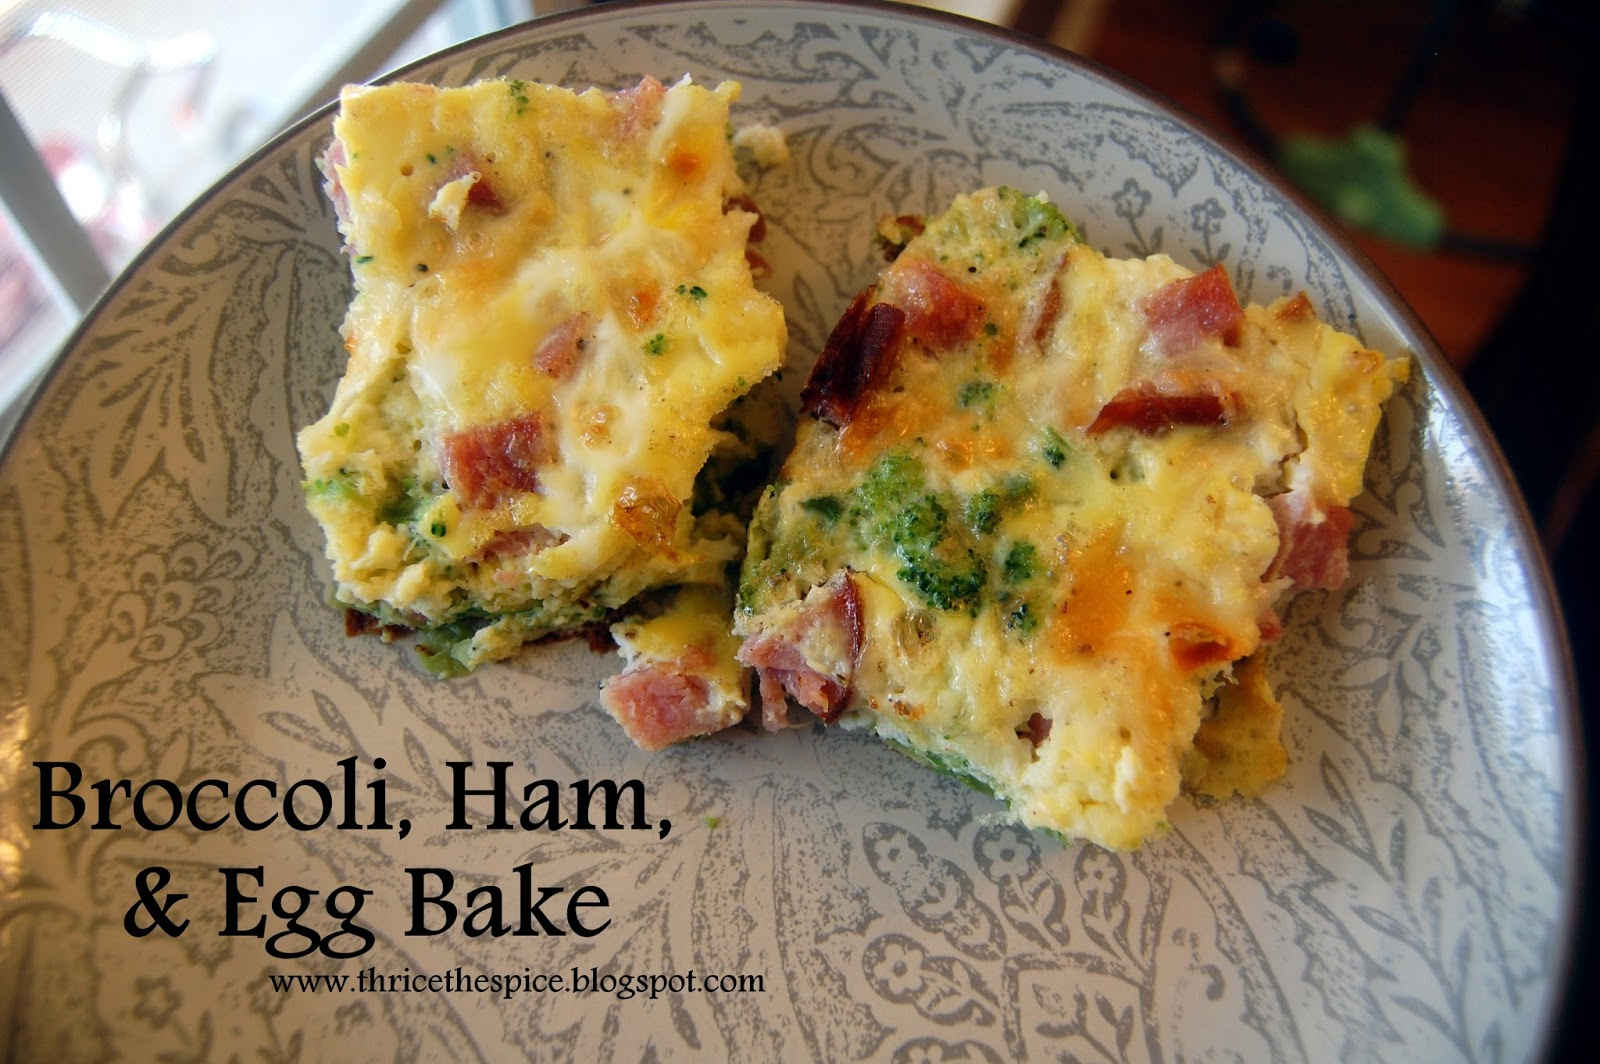 ThriceTheSpice: Broccoli, Ham, & Egg Bake